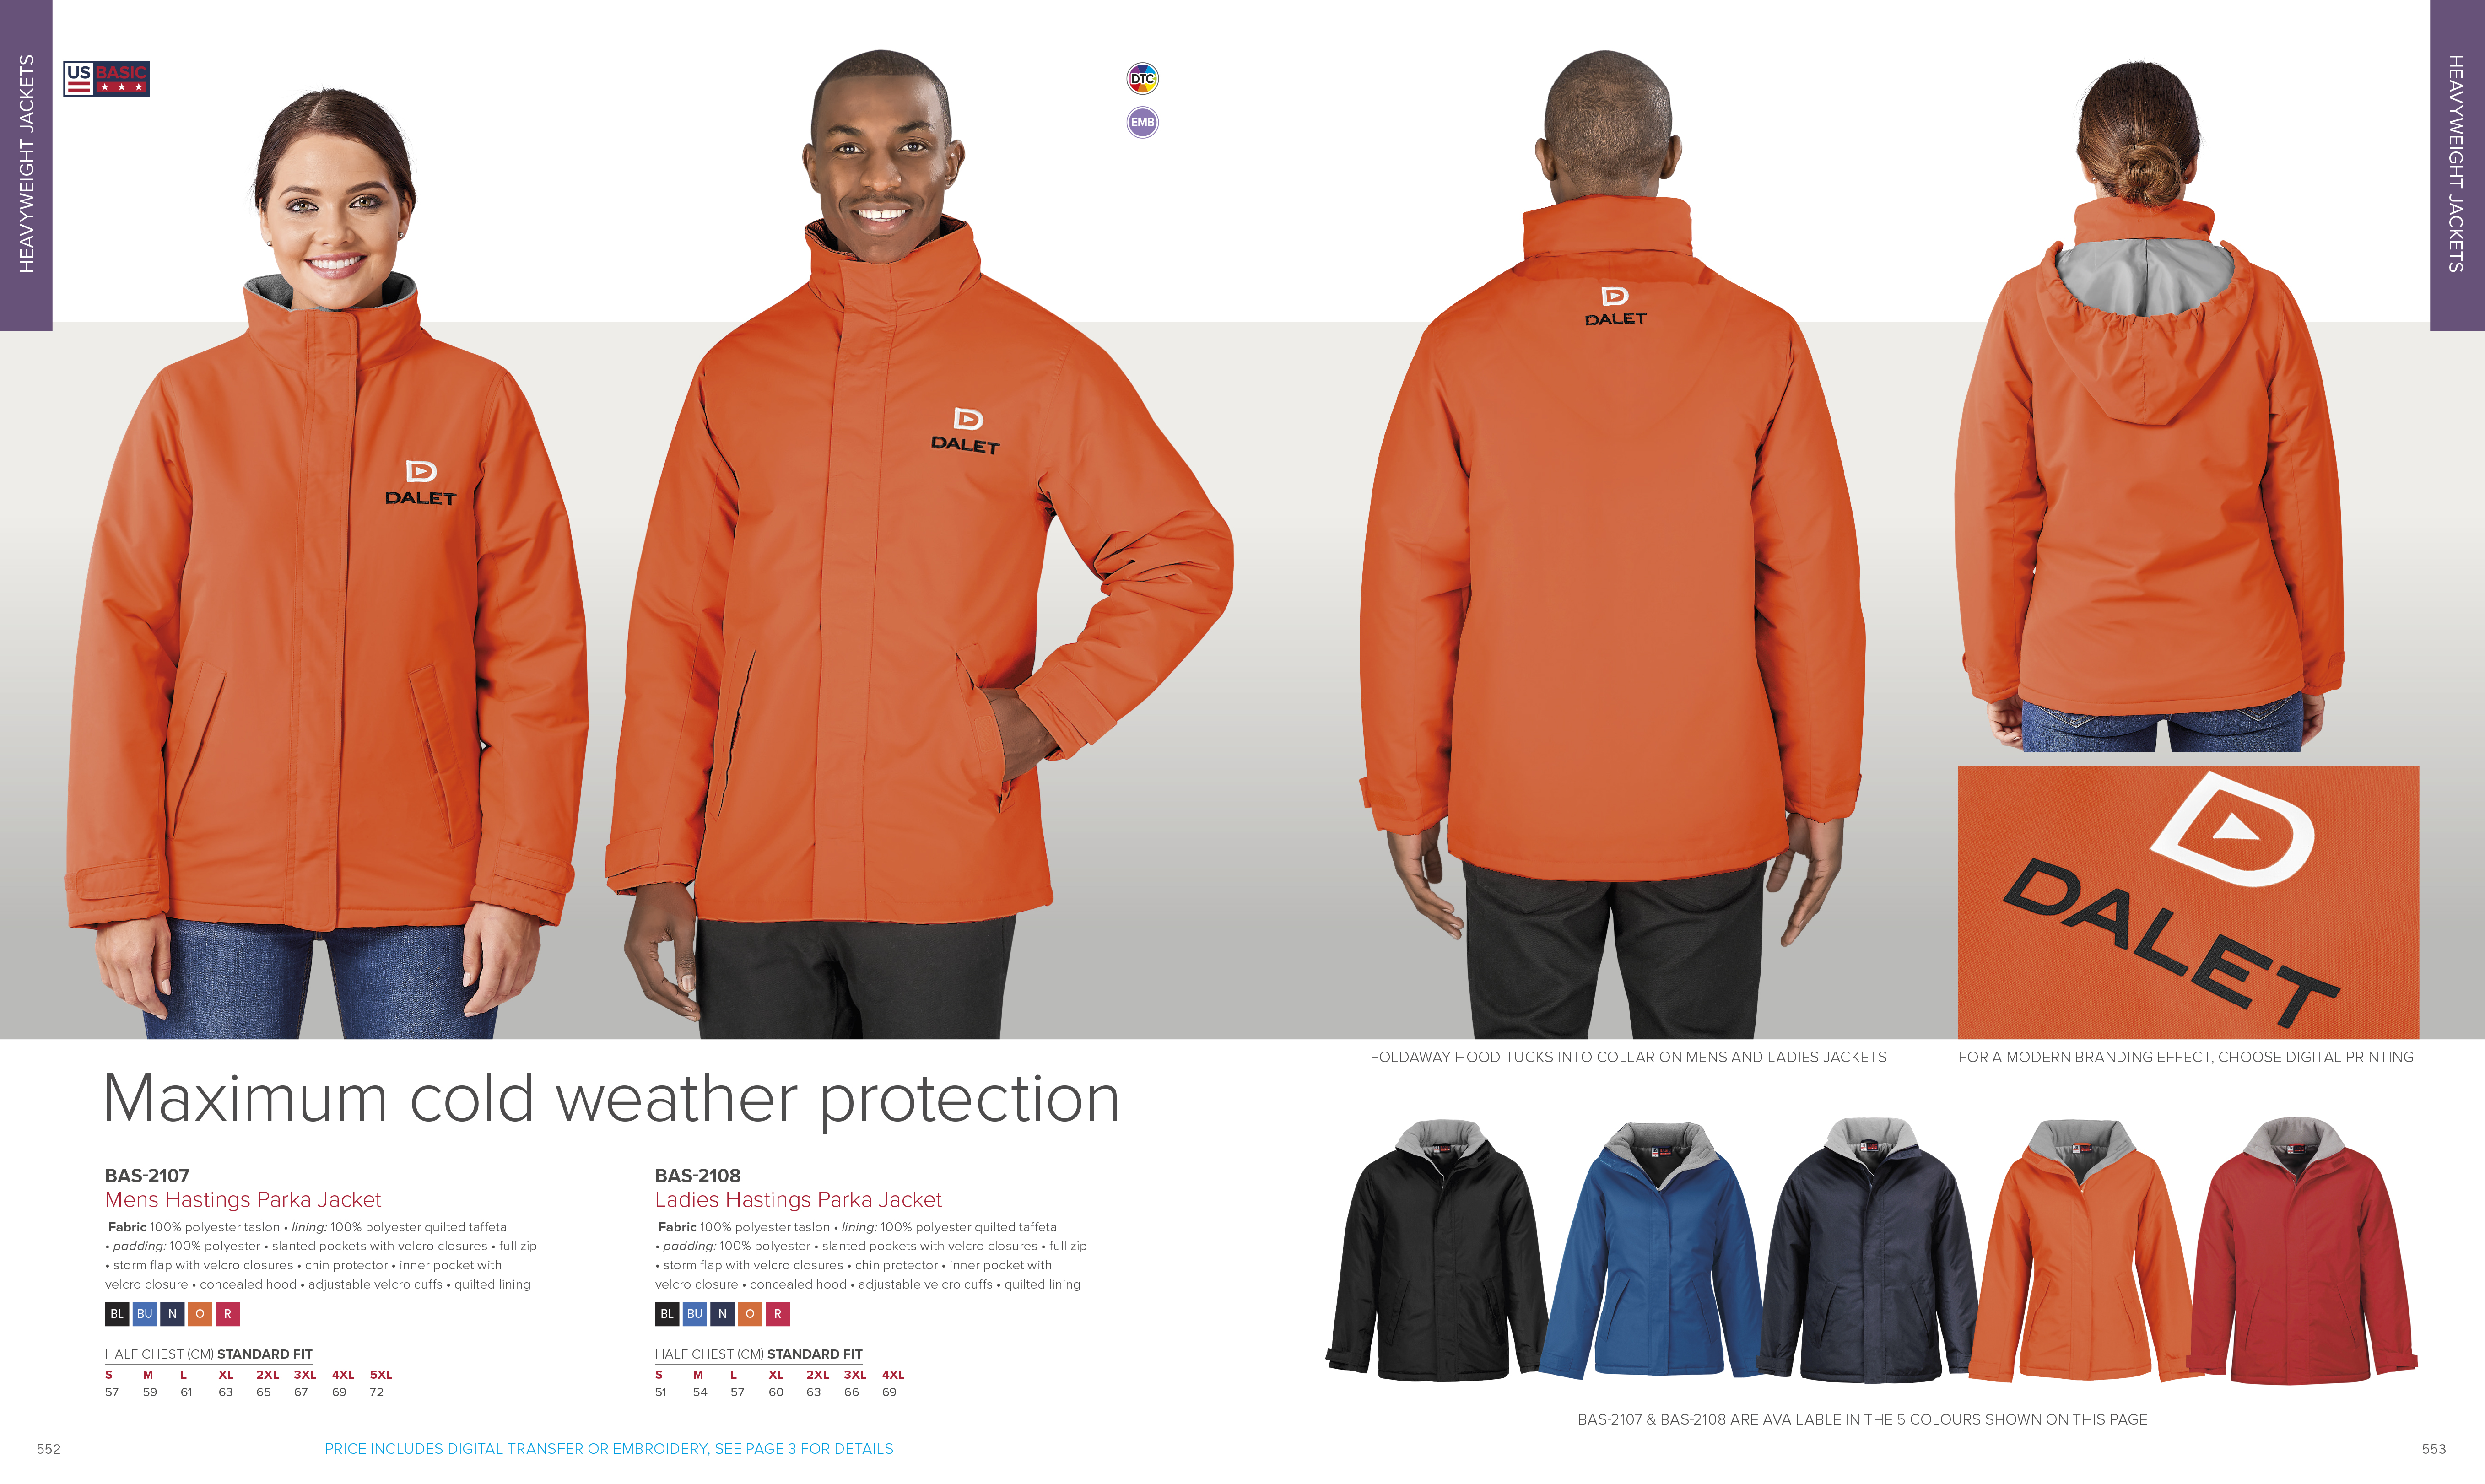 Hastings parka jacket winter jackets corporate uniforms for Spa uniform south africa